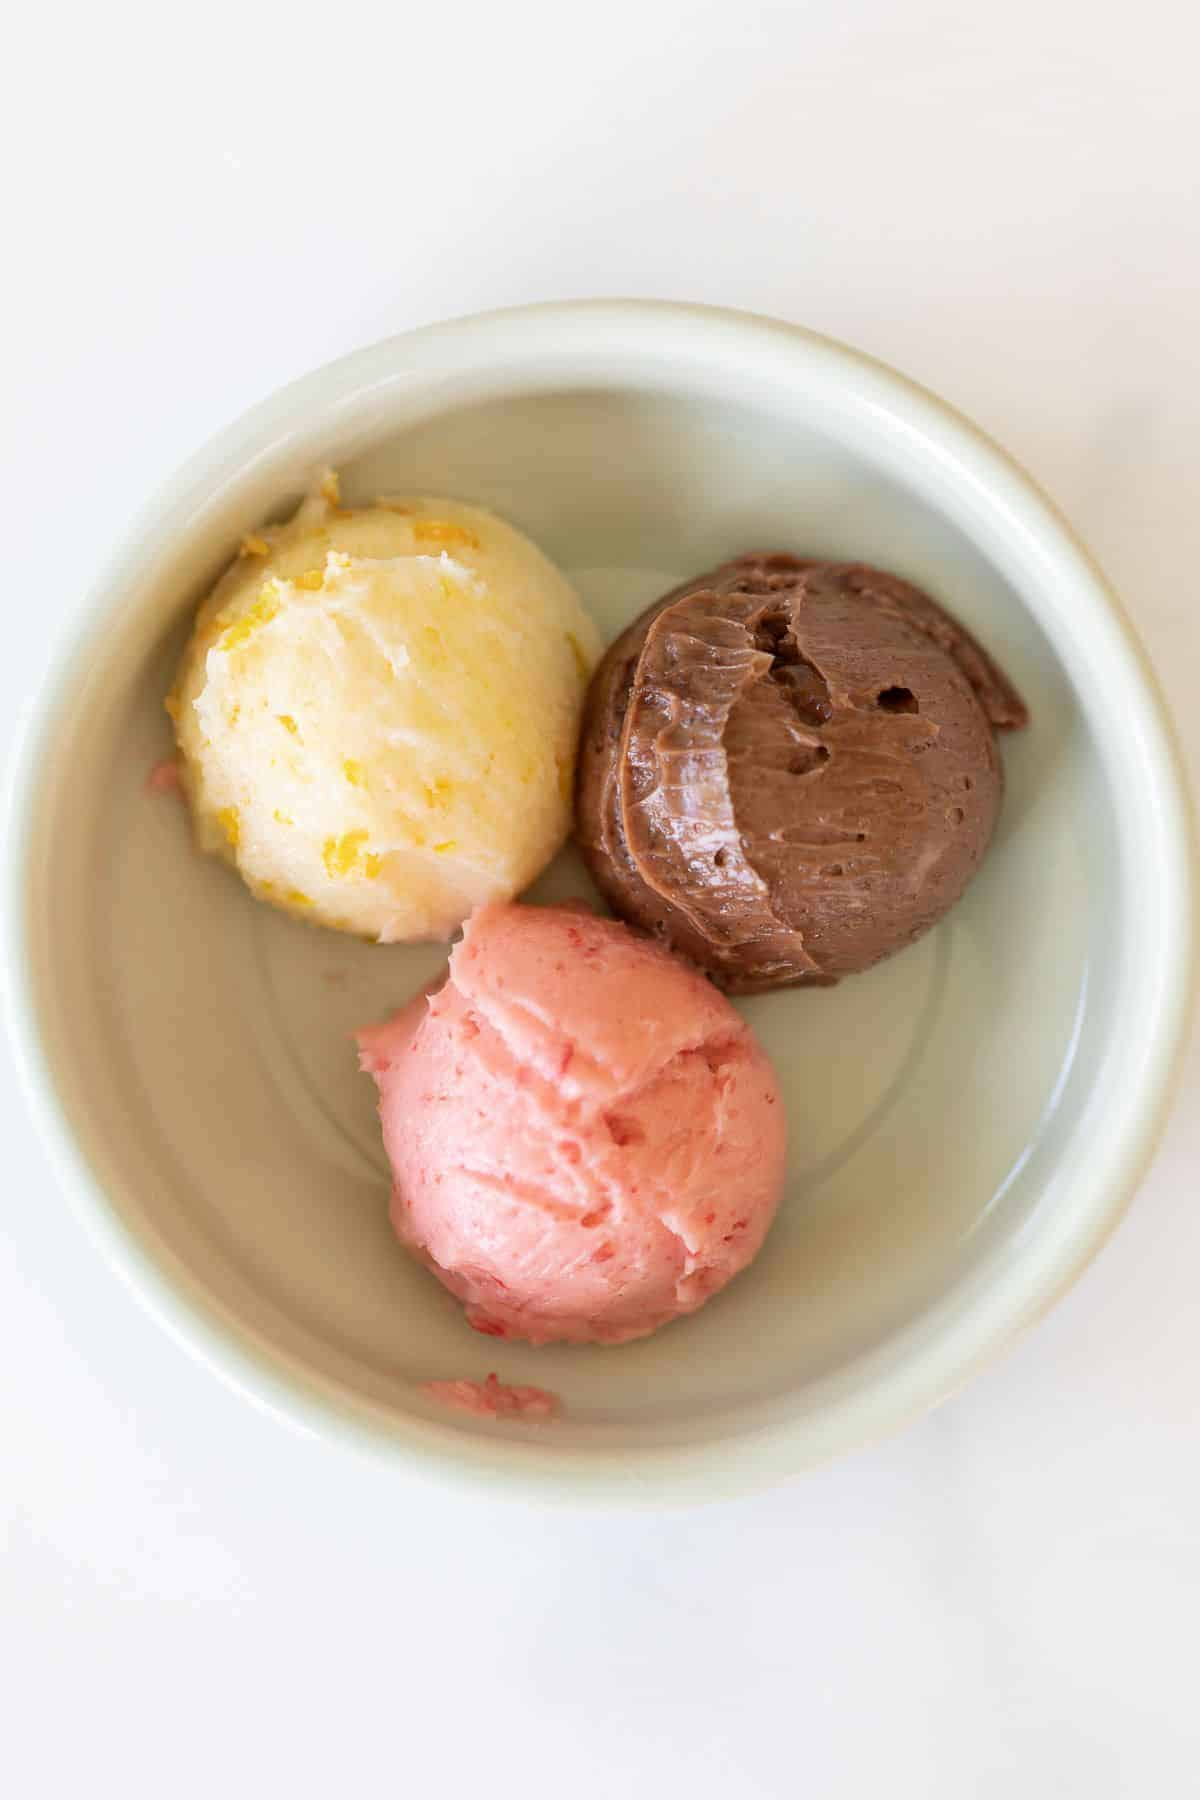 A white bowl full three scoops of flavored butters, one orange, one chocolate and one strawberry.